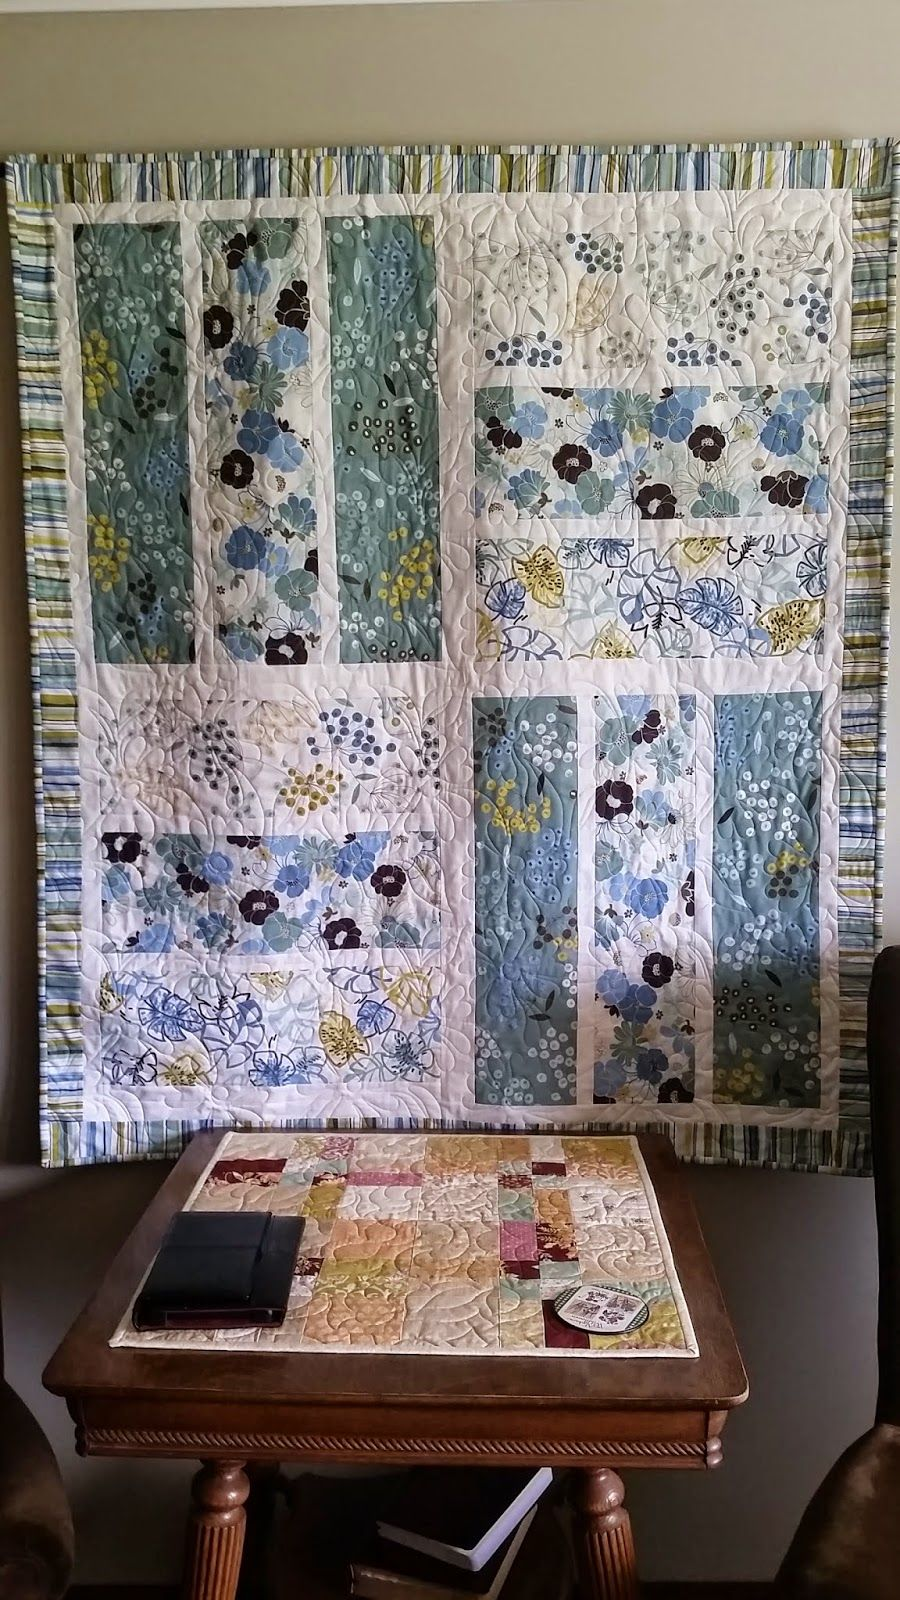 oversized strips quilt  no pattern just straightforward rectangles nice for showing off large